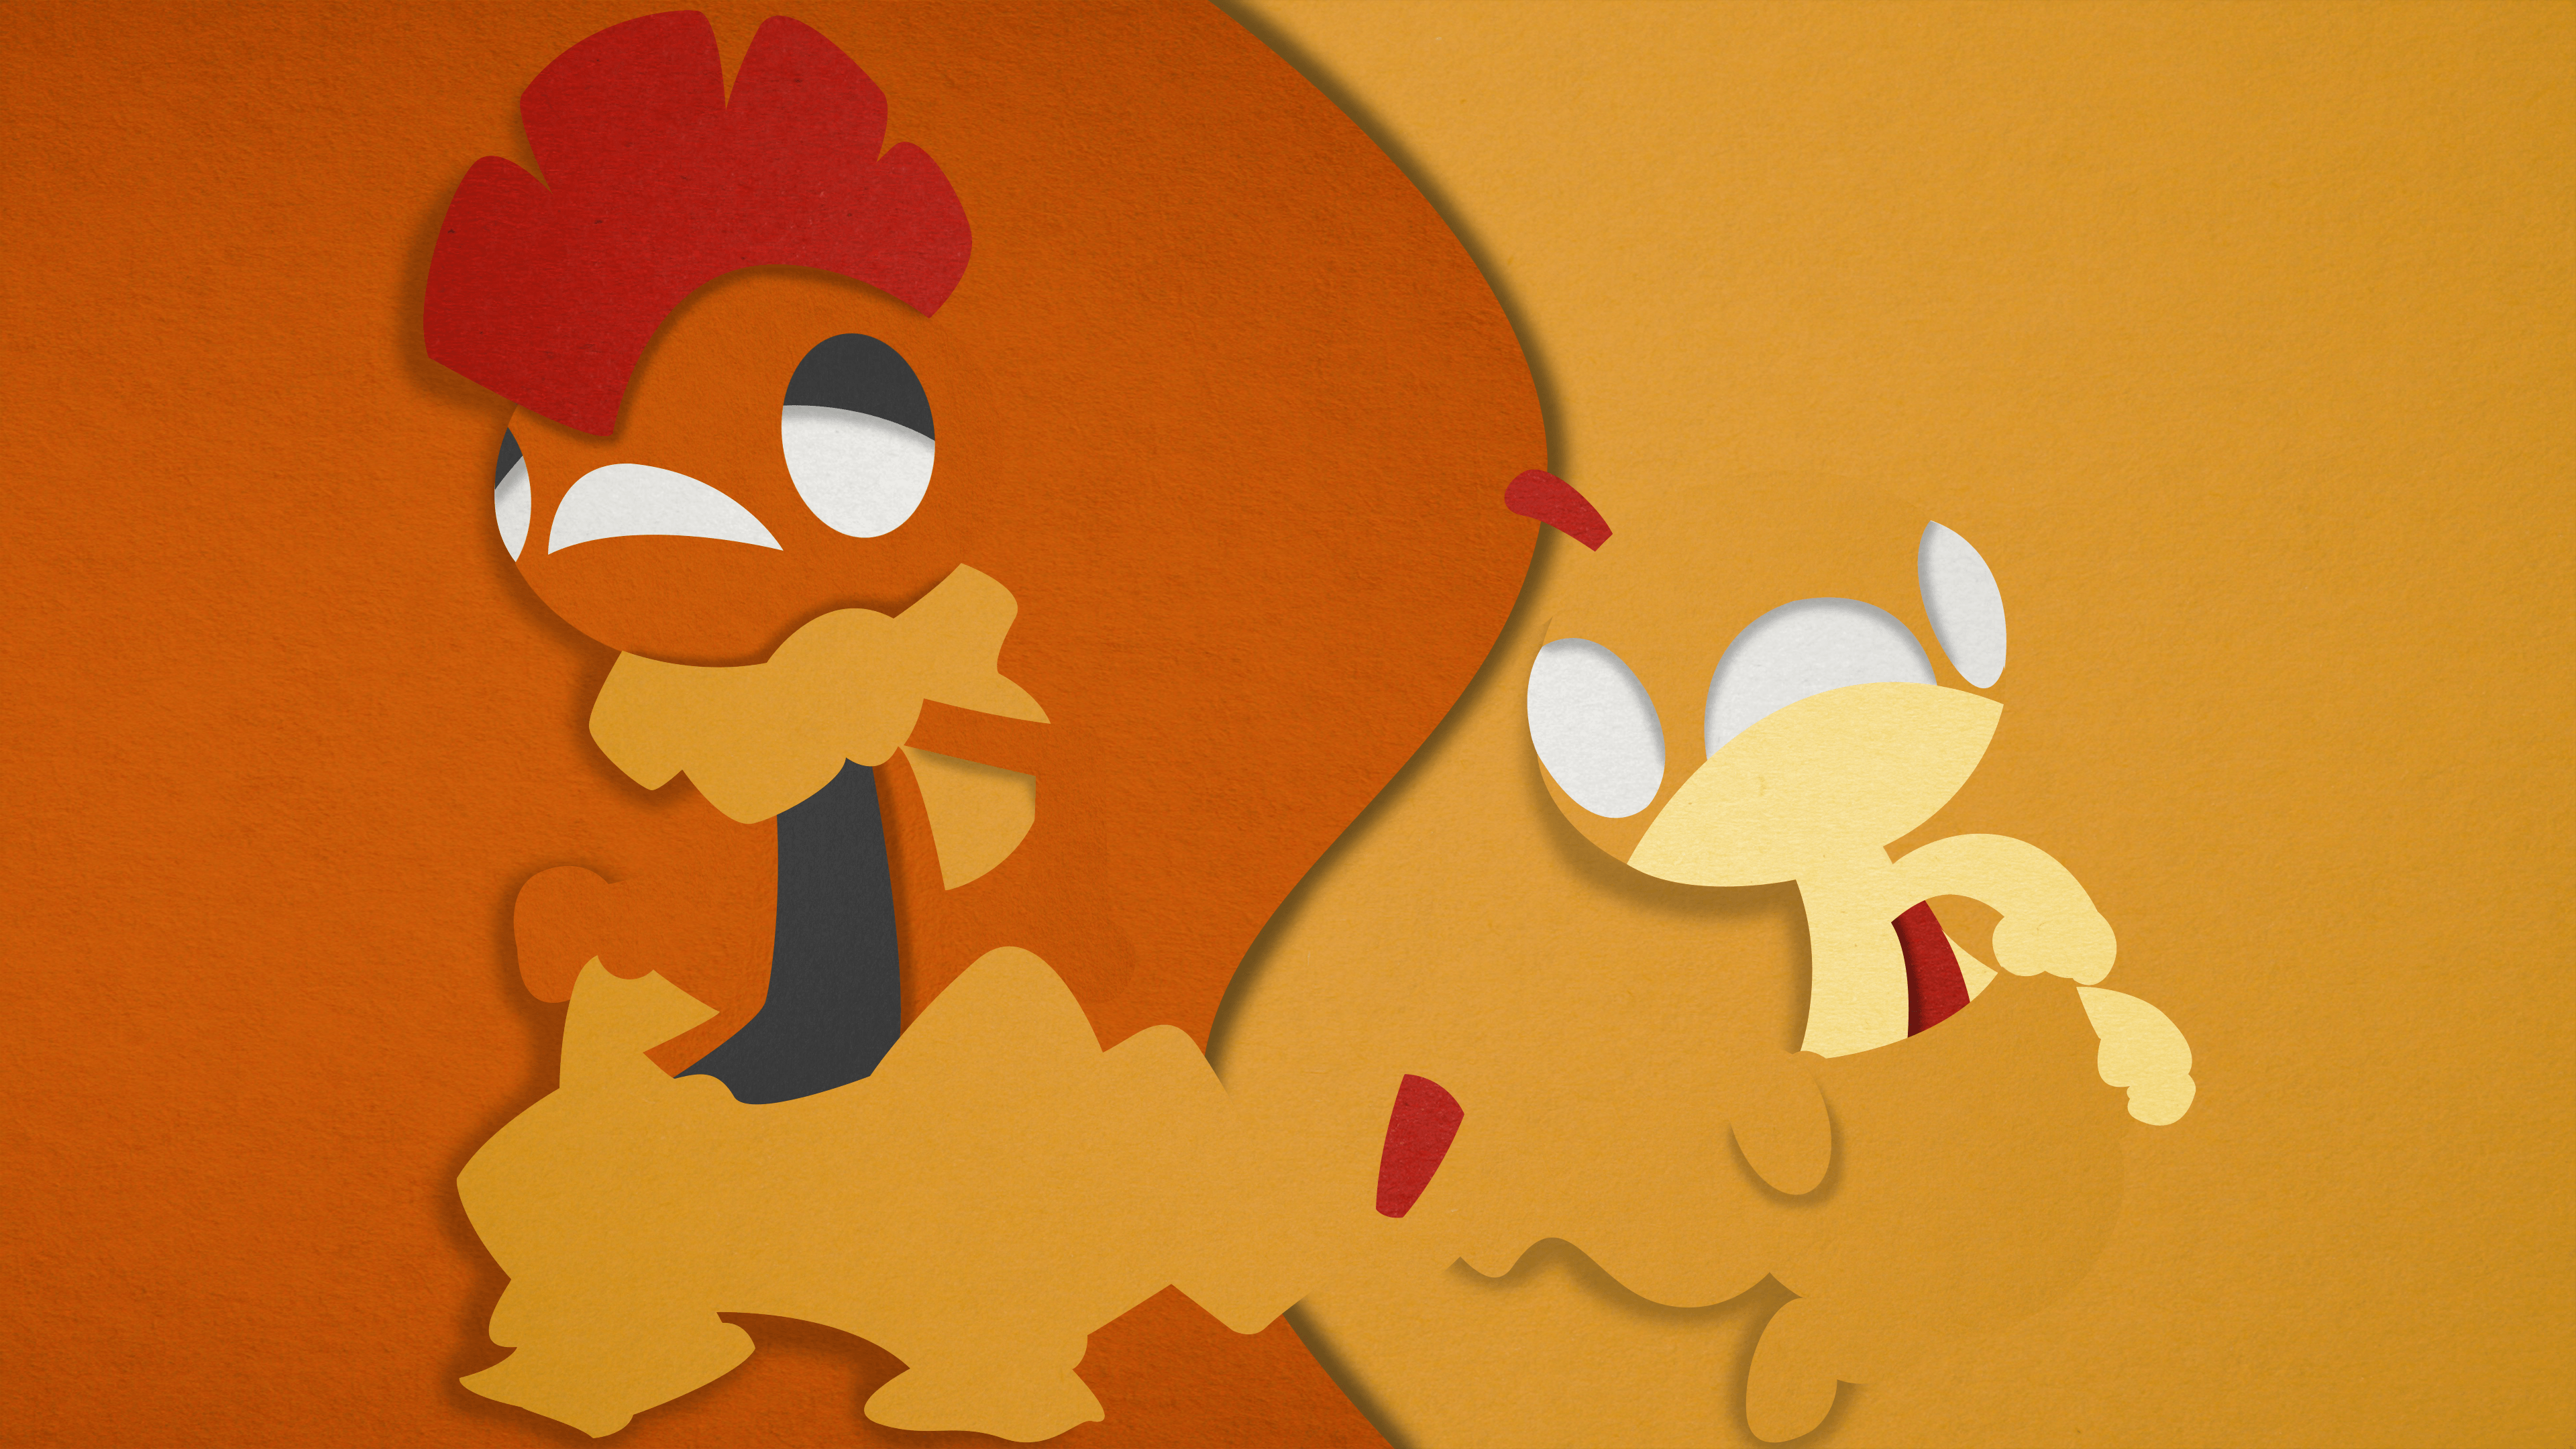 Scraggy and Scrafty